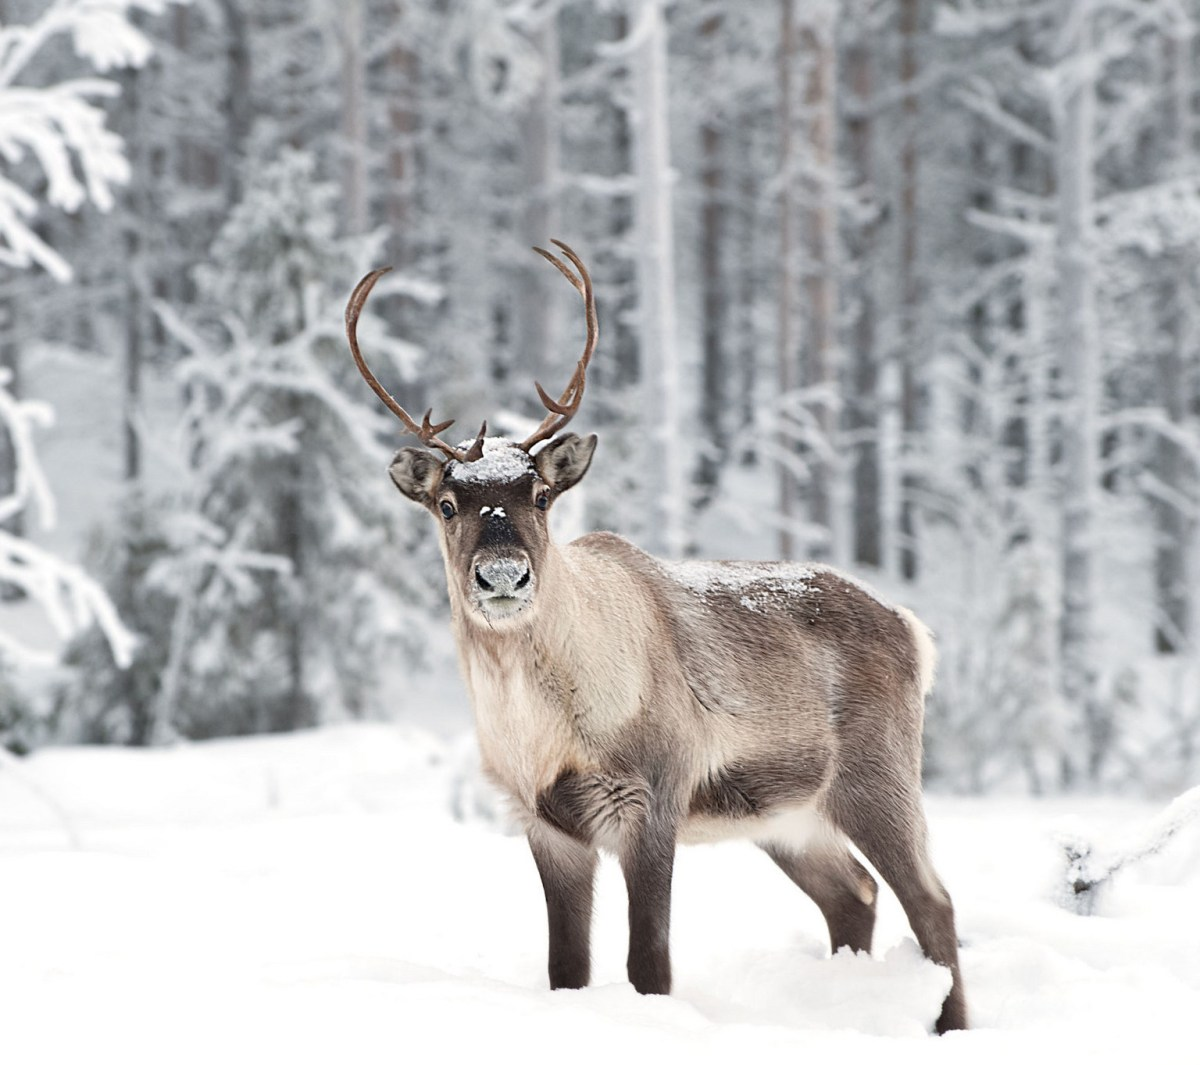 Doe, A Deer, A Female Reindeer: The Spirit of Mother Christmas